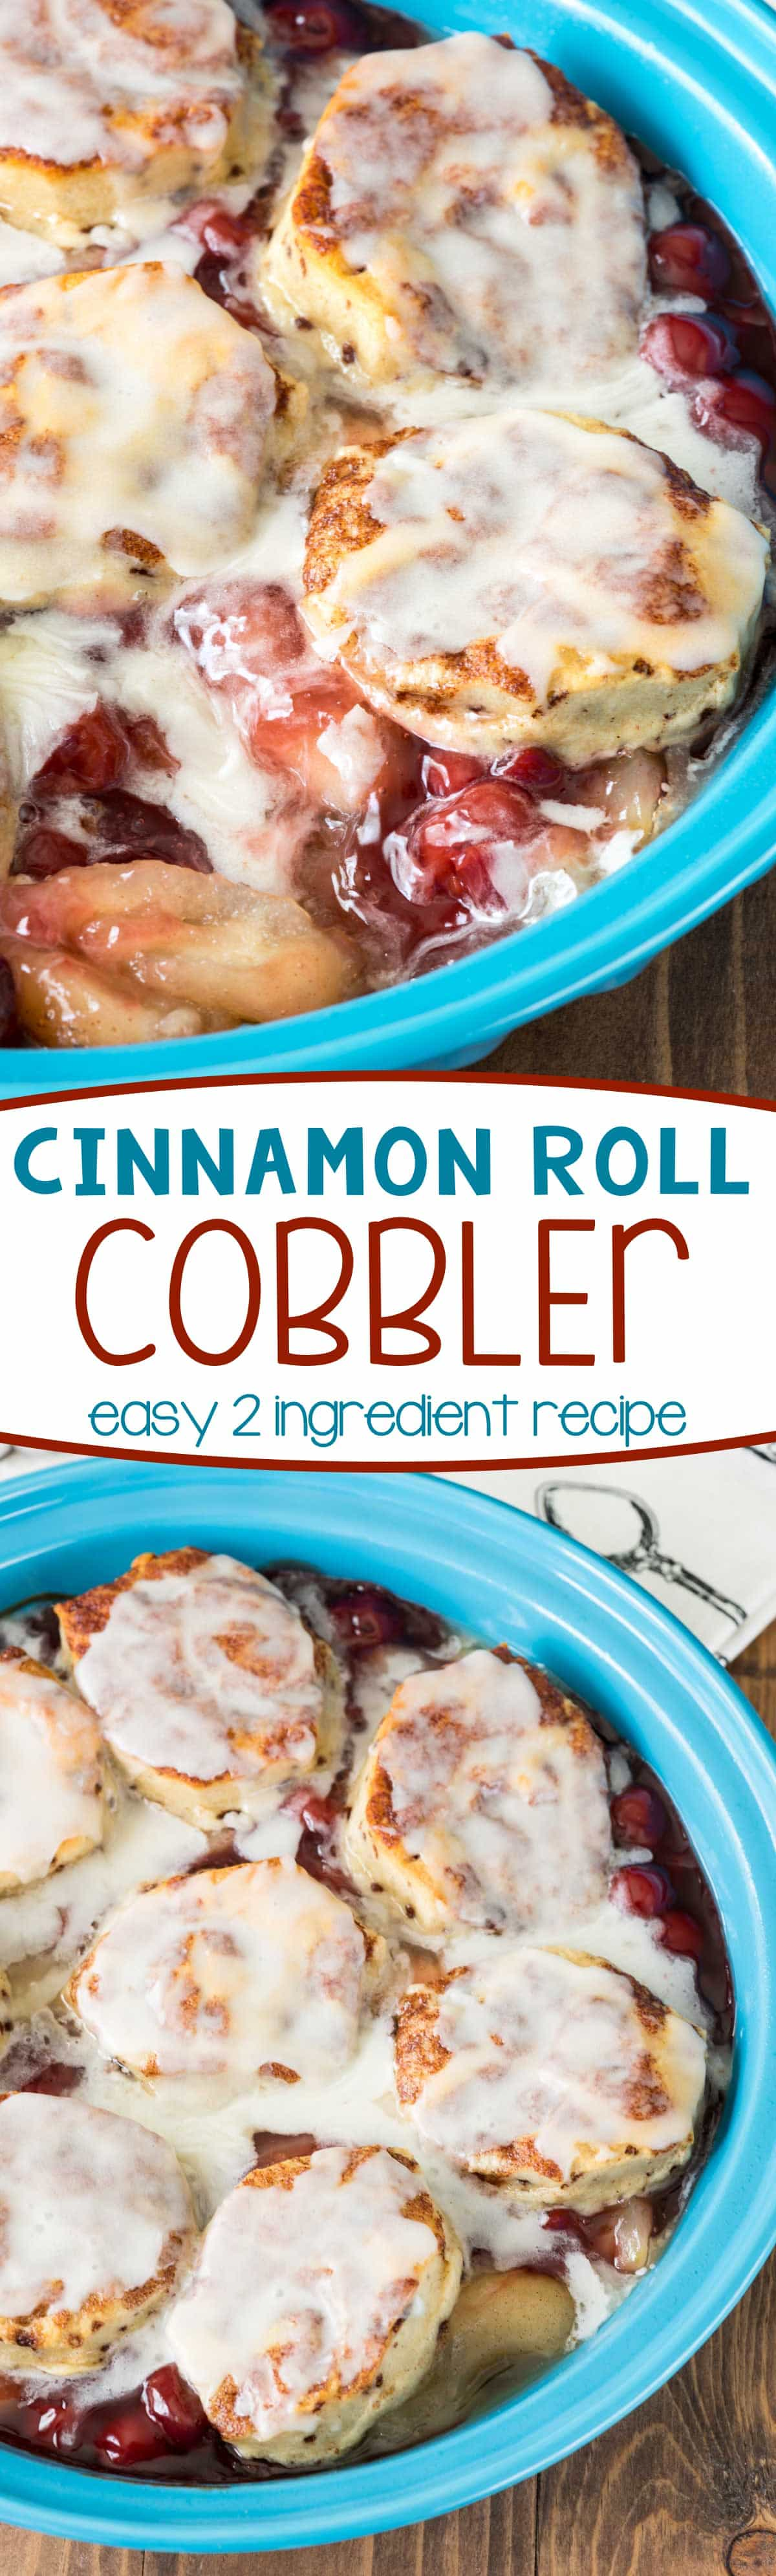 This Cinnamon Roll Cobbler is an easy 2 ingredient recipe that's the perfect brunch, breakfast, or dessert! Everyone loved this - the kids made it themselves!